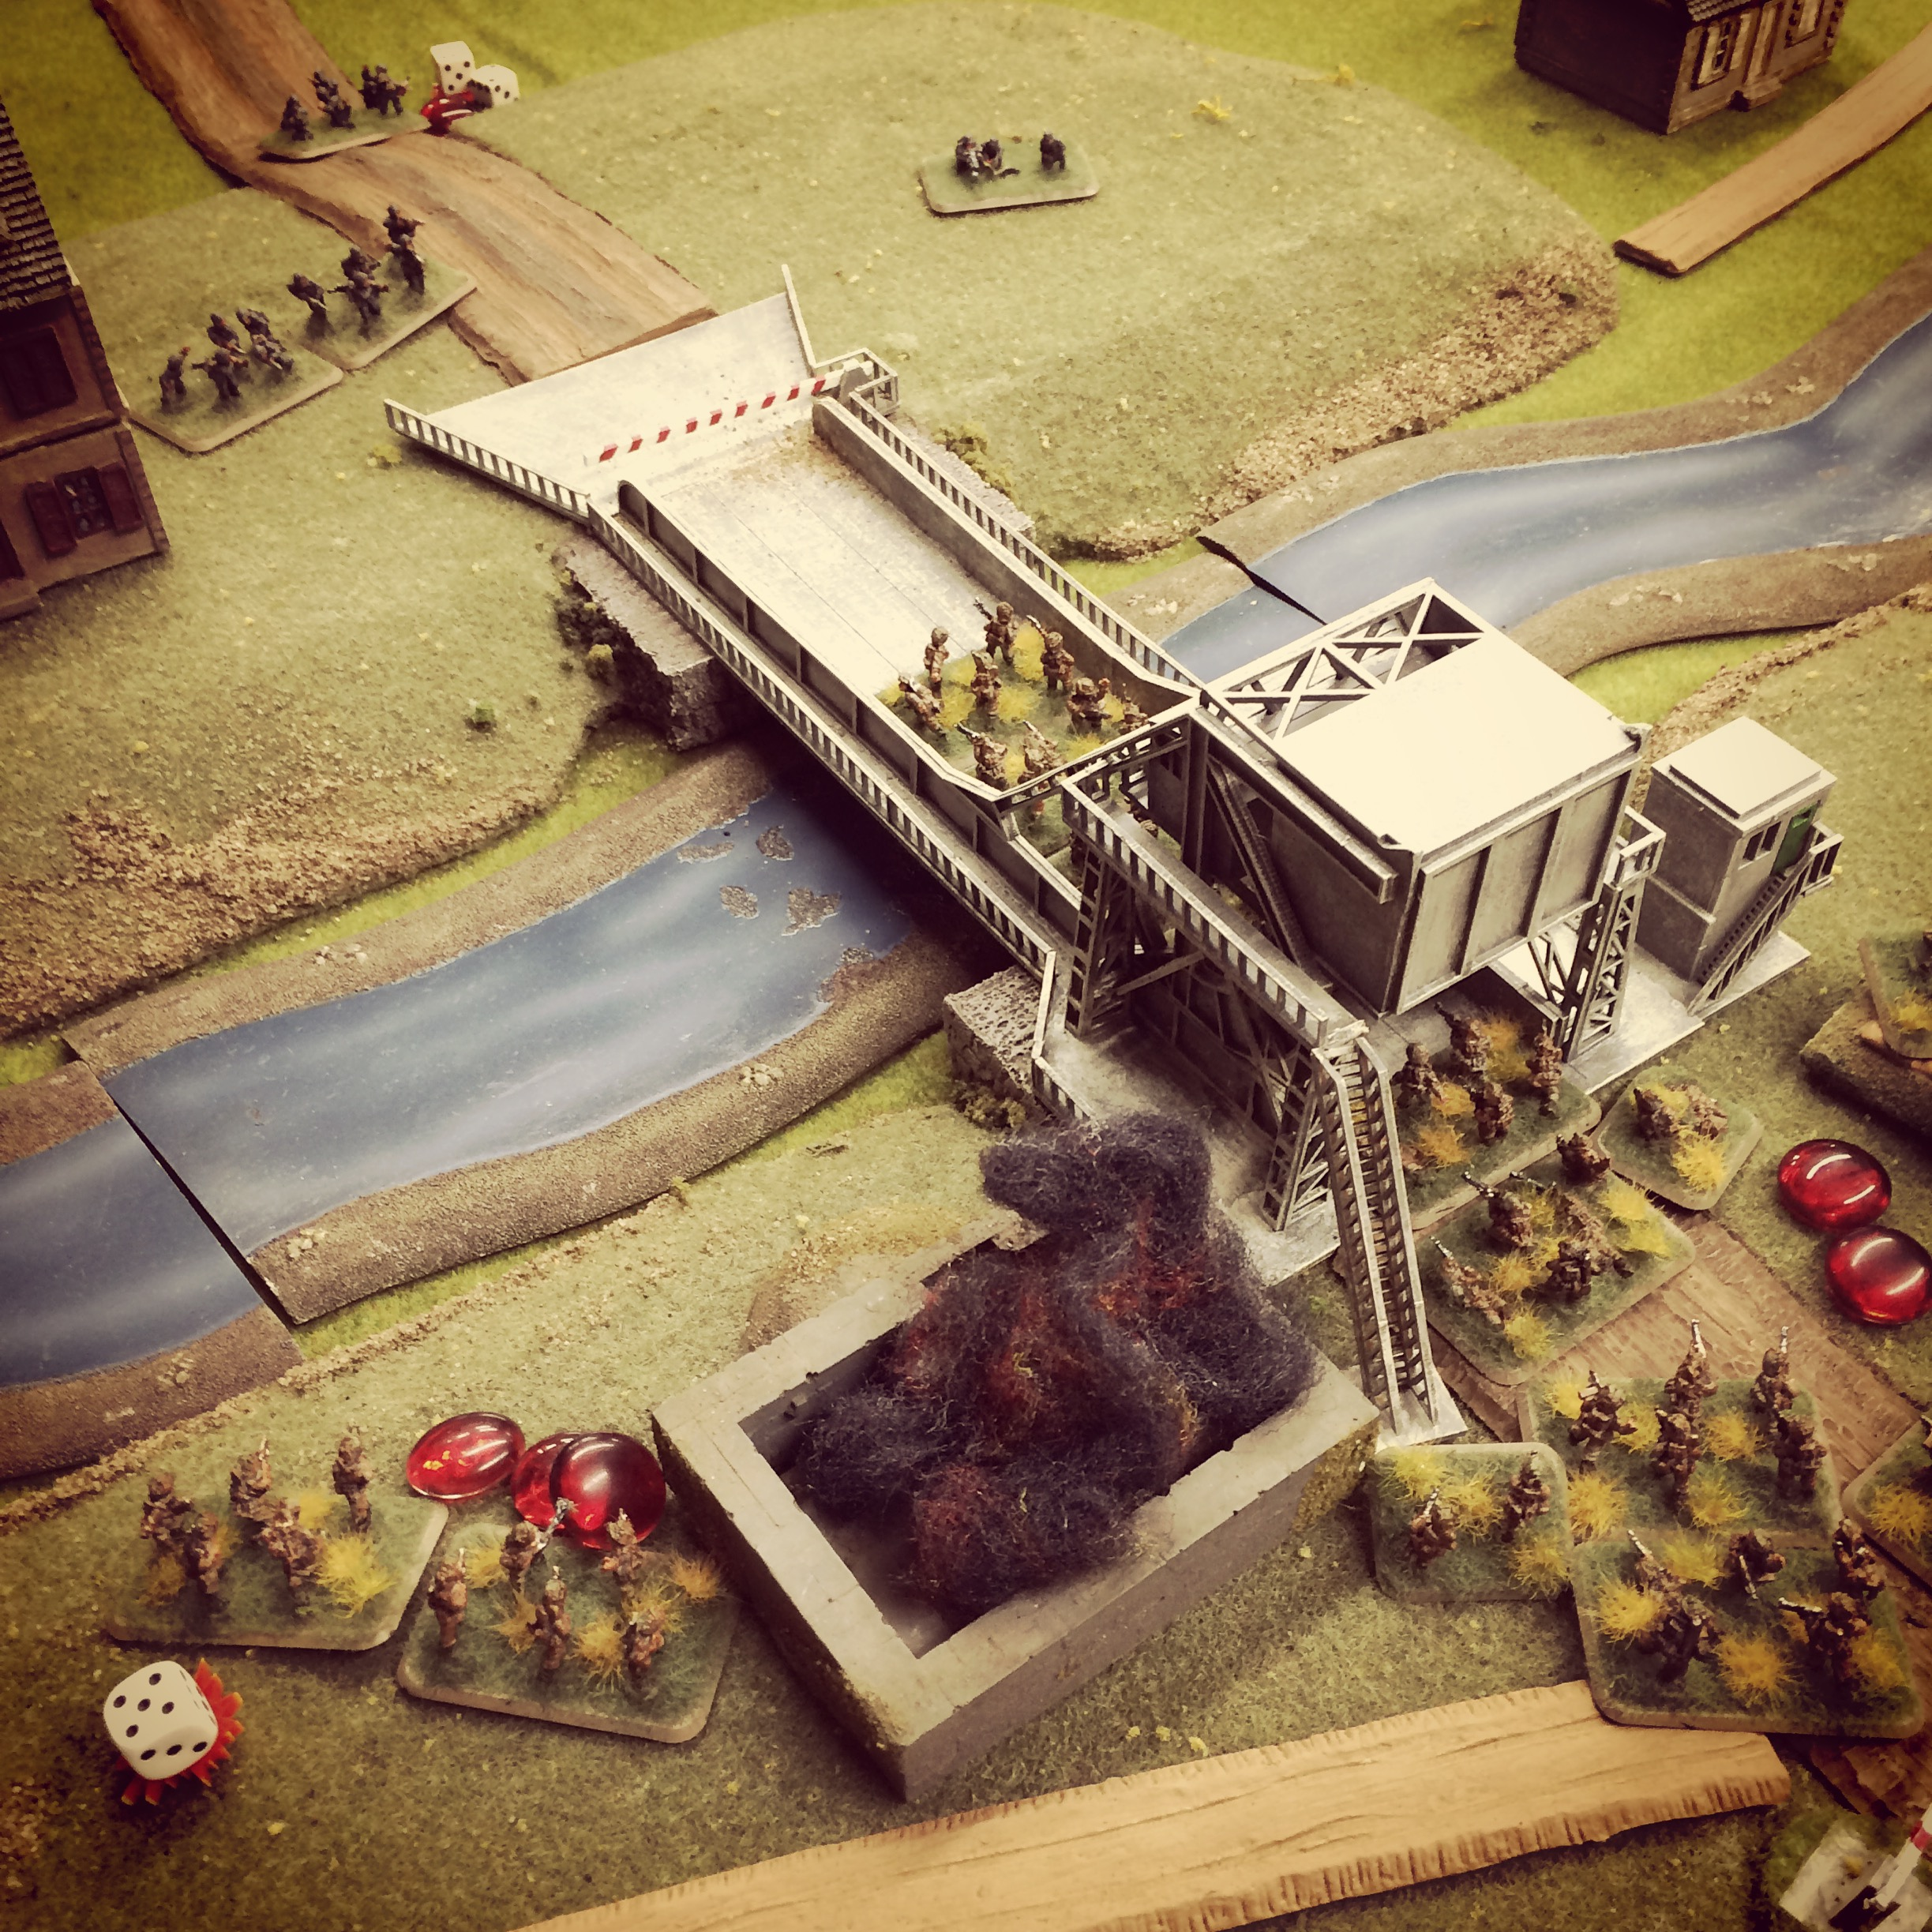 The bunker burns, the British head over the bridge but take shots from German snipers